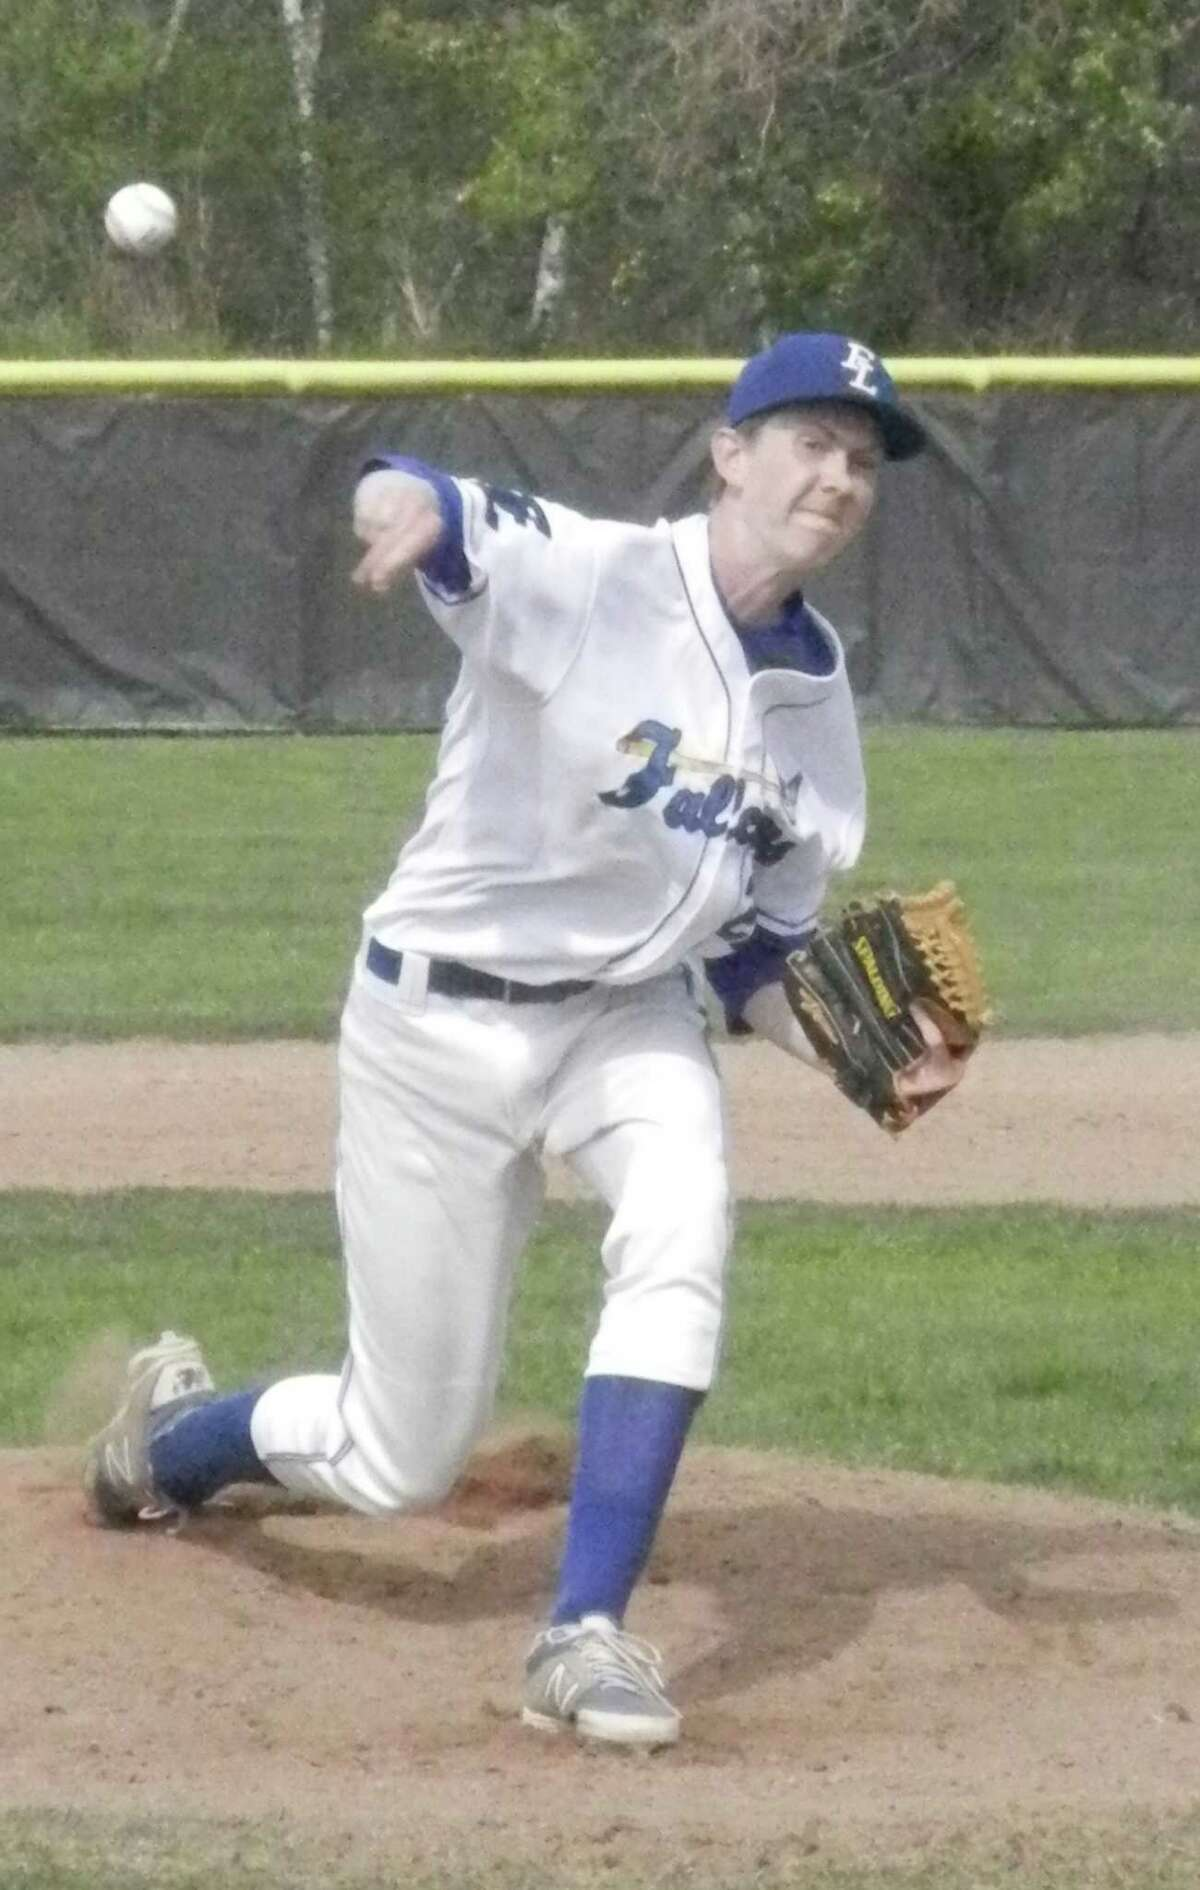 Fairfield Ludlowe senior pitcher Kevin Hickey sends a pitch to a Greenwich batter on Wednesday, May 7 in an FCIAC baseball game at Kiwanis Field. Hickey improved to 5-0 on the season in the Falcons' 3-2 win over the Cardinals.